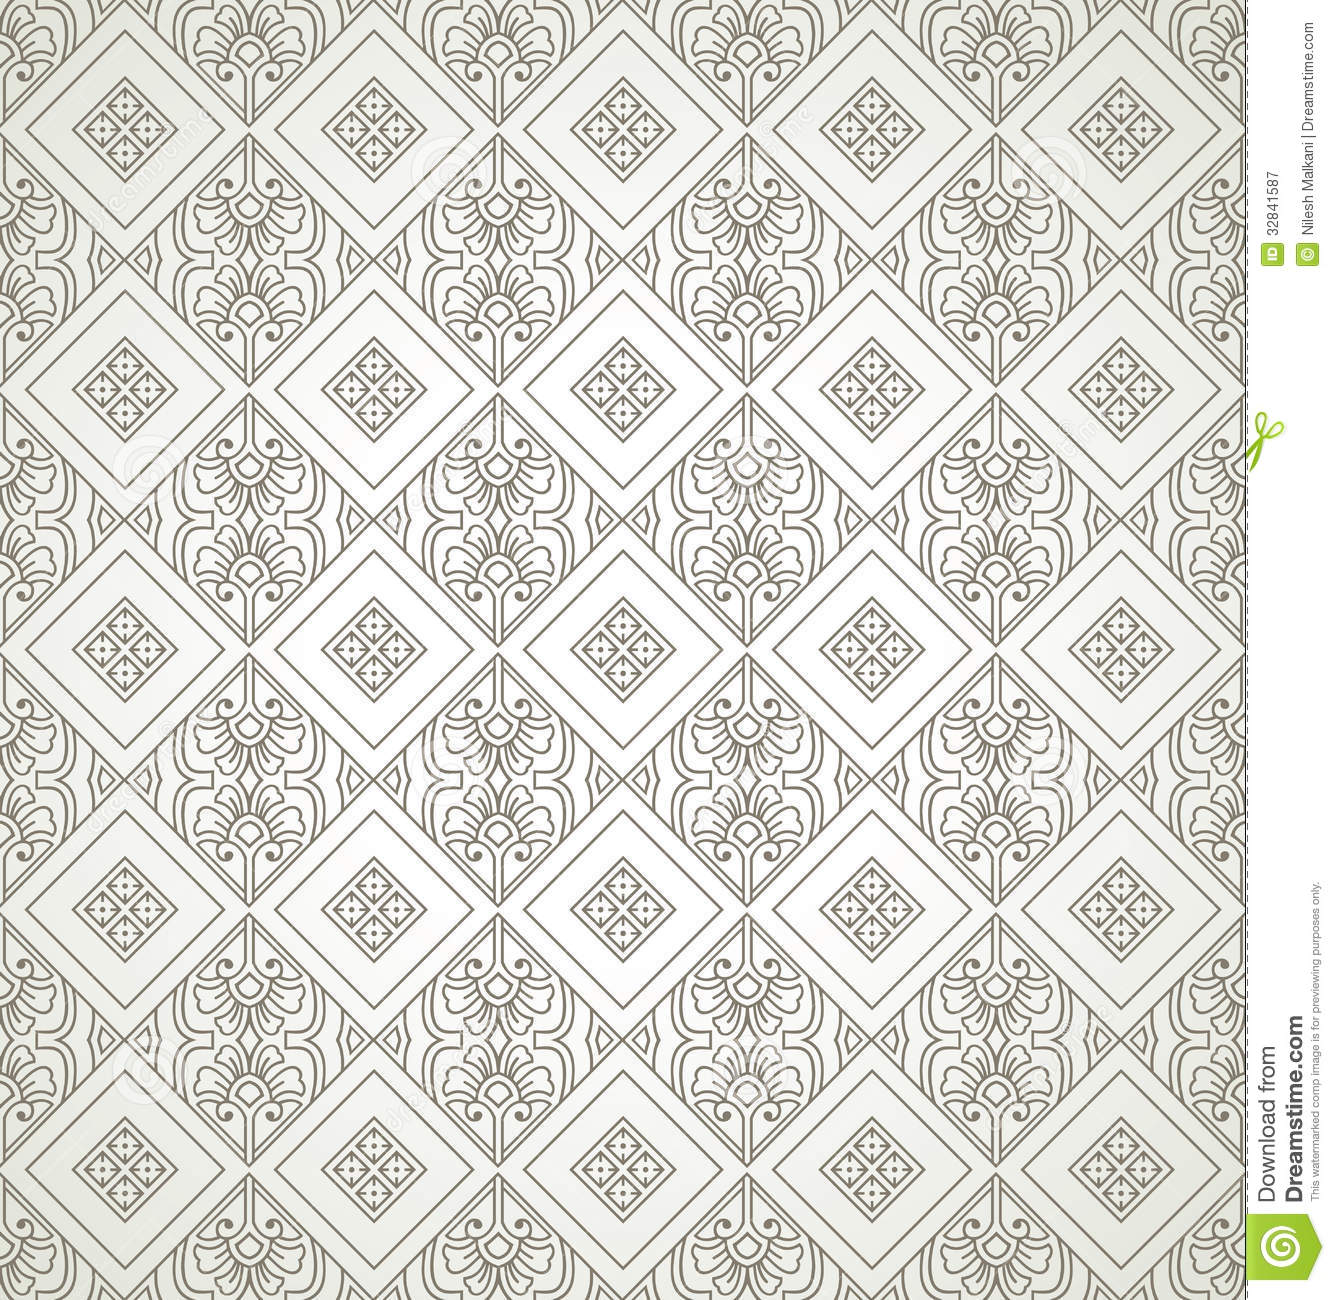 Royalty Free Stock Photography: Seamless antique look wallpaper